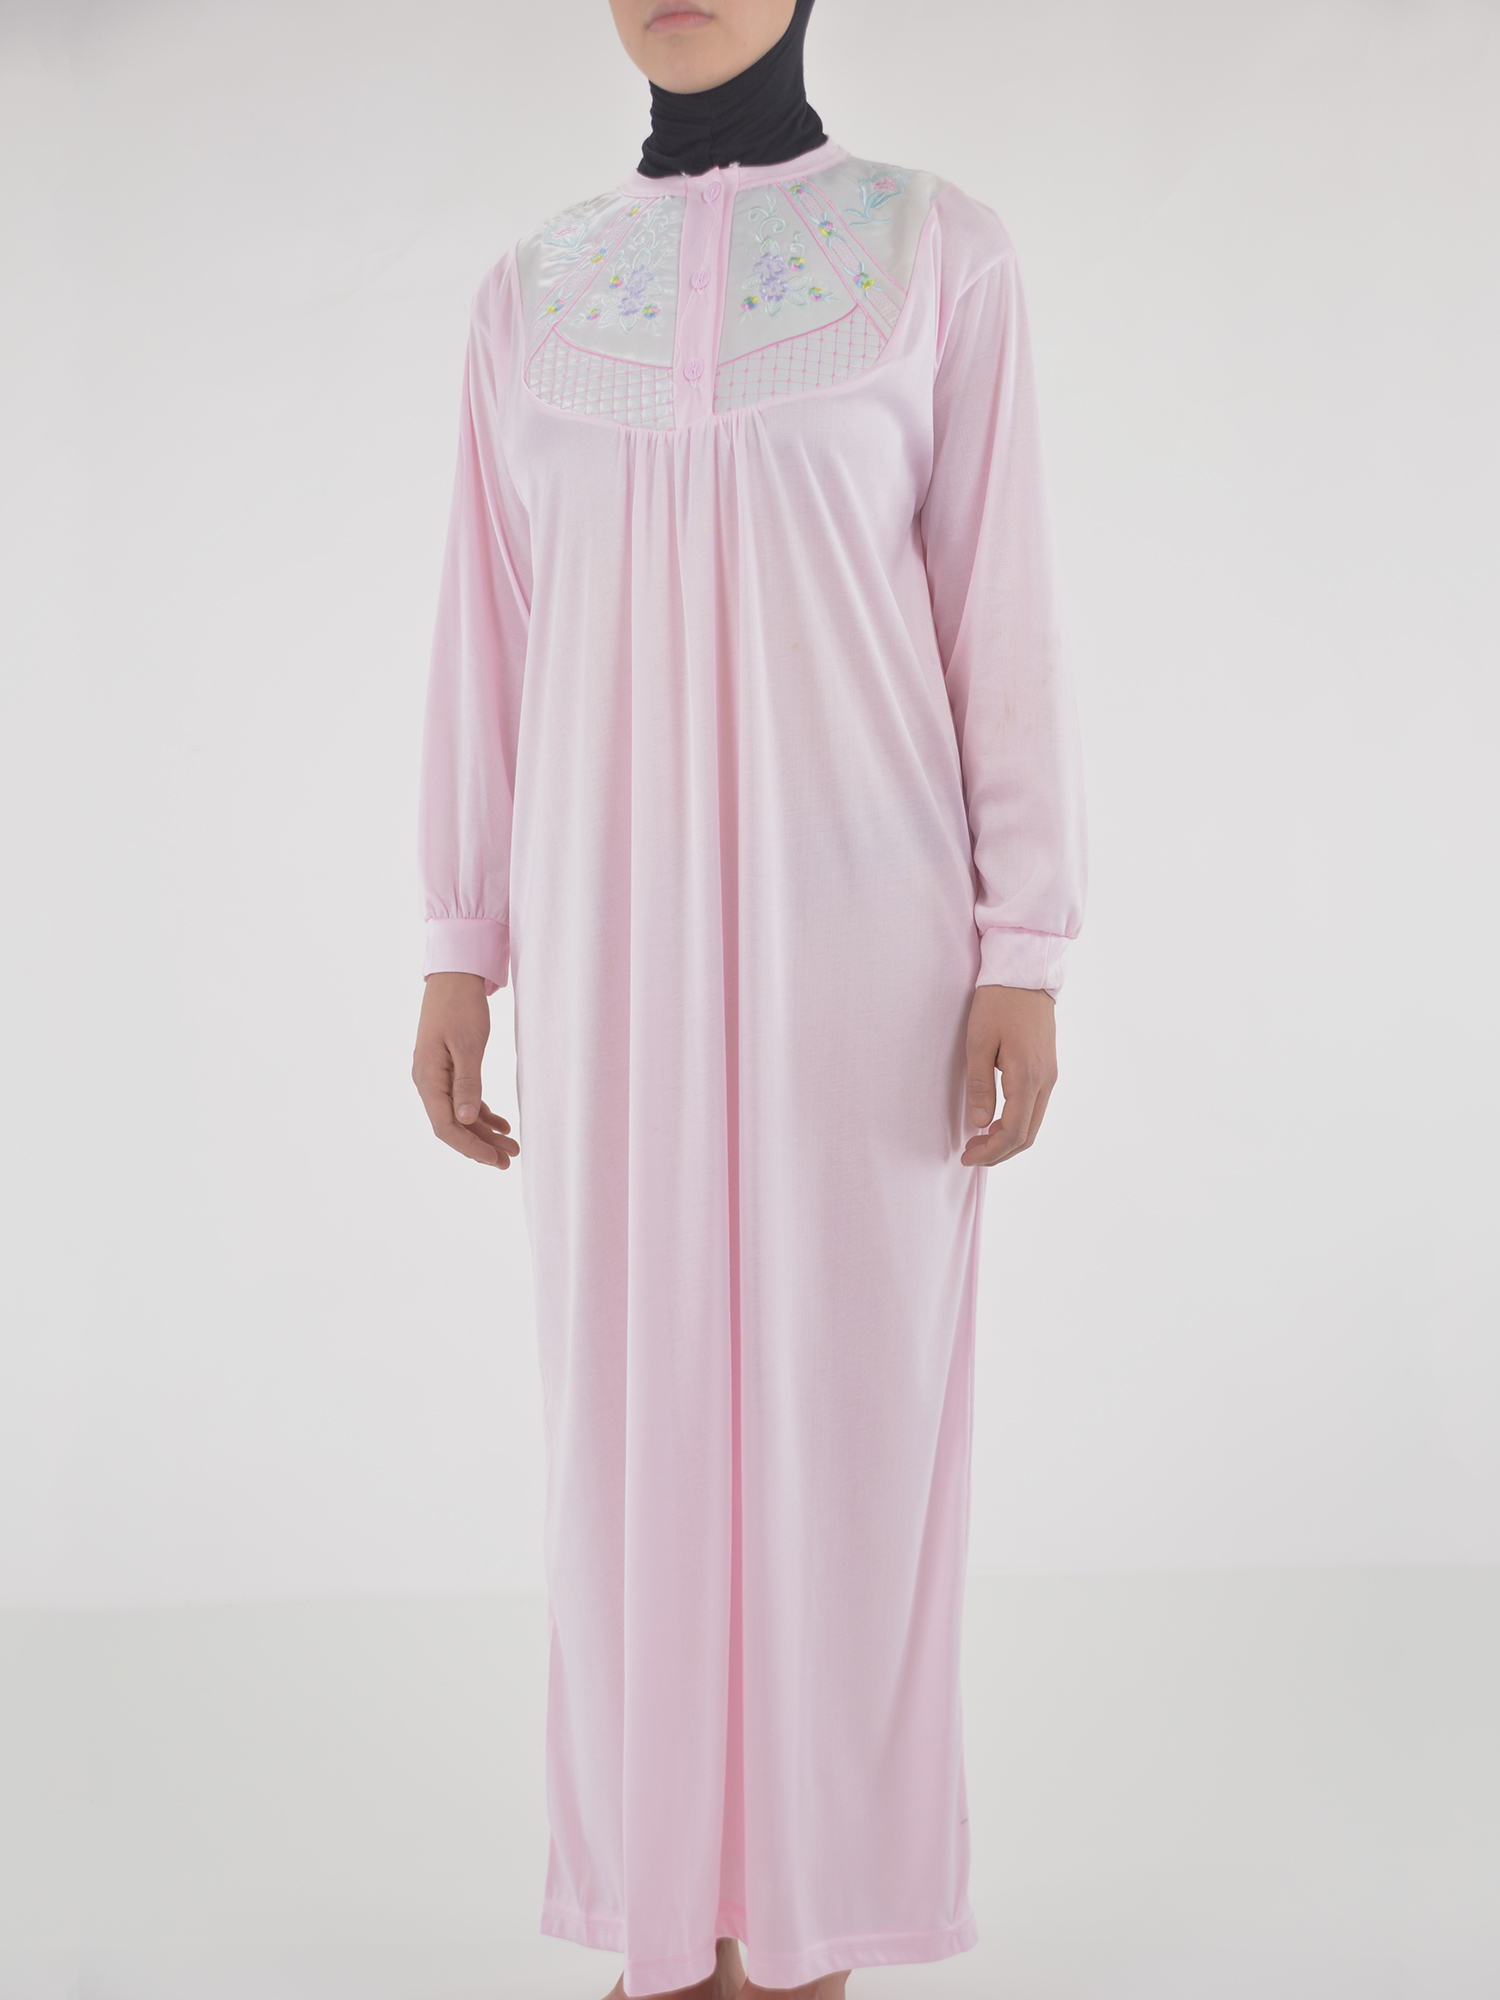 Floral Embroidered Cushioned Cotton Nightgown NG101 (2)